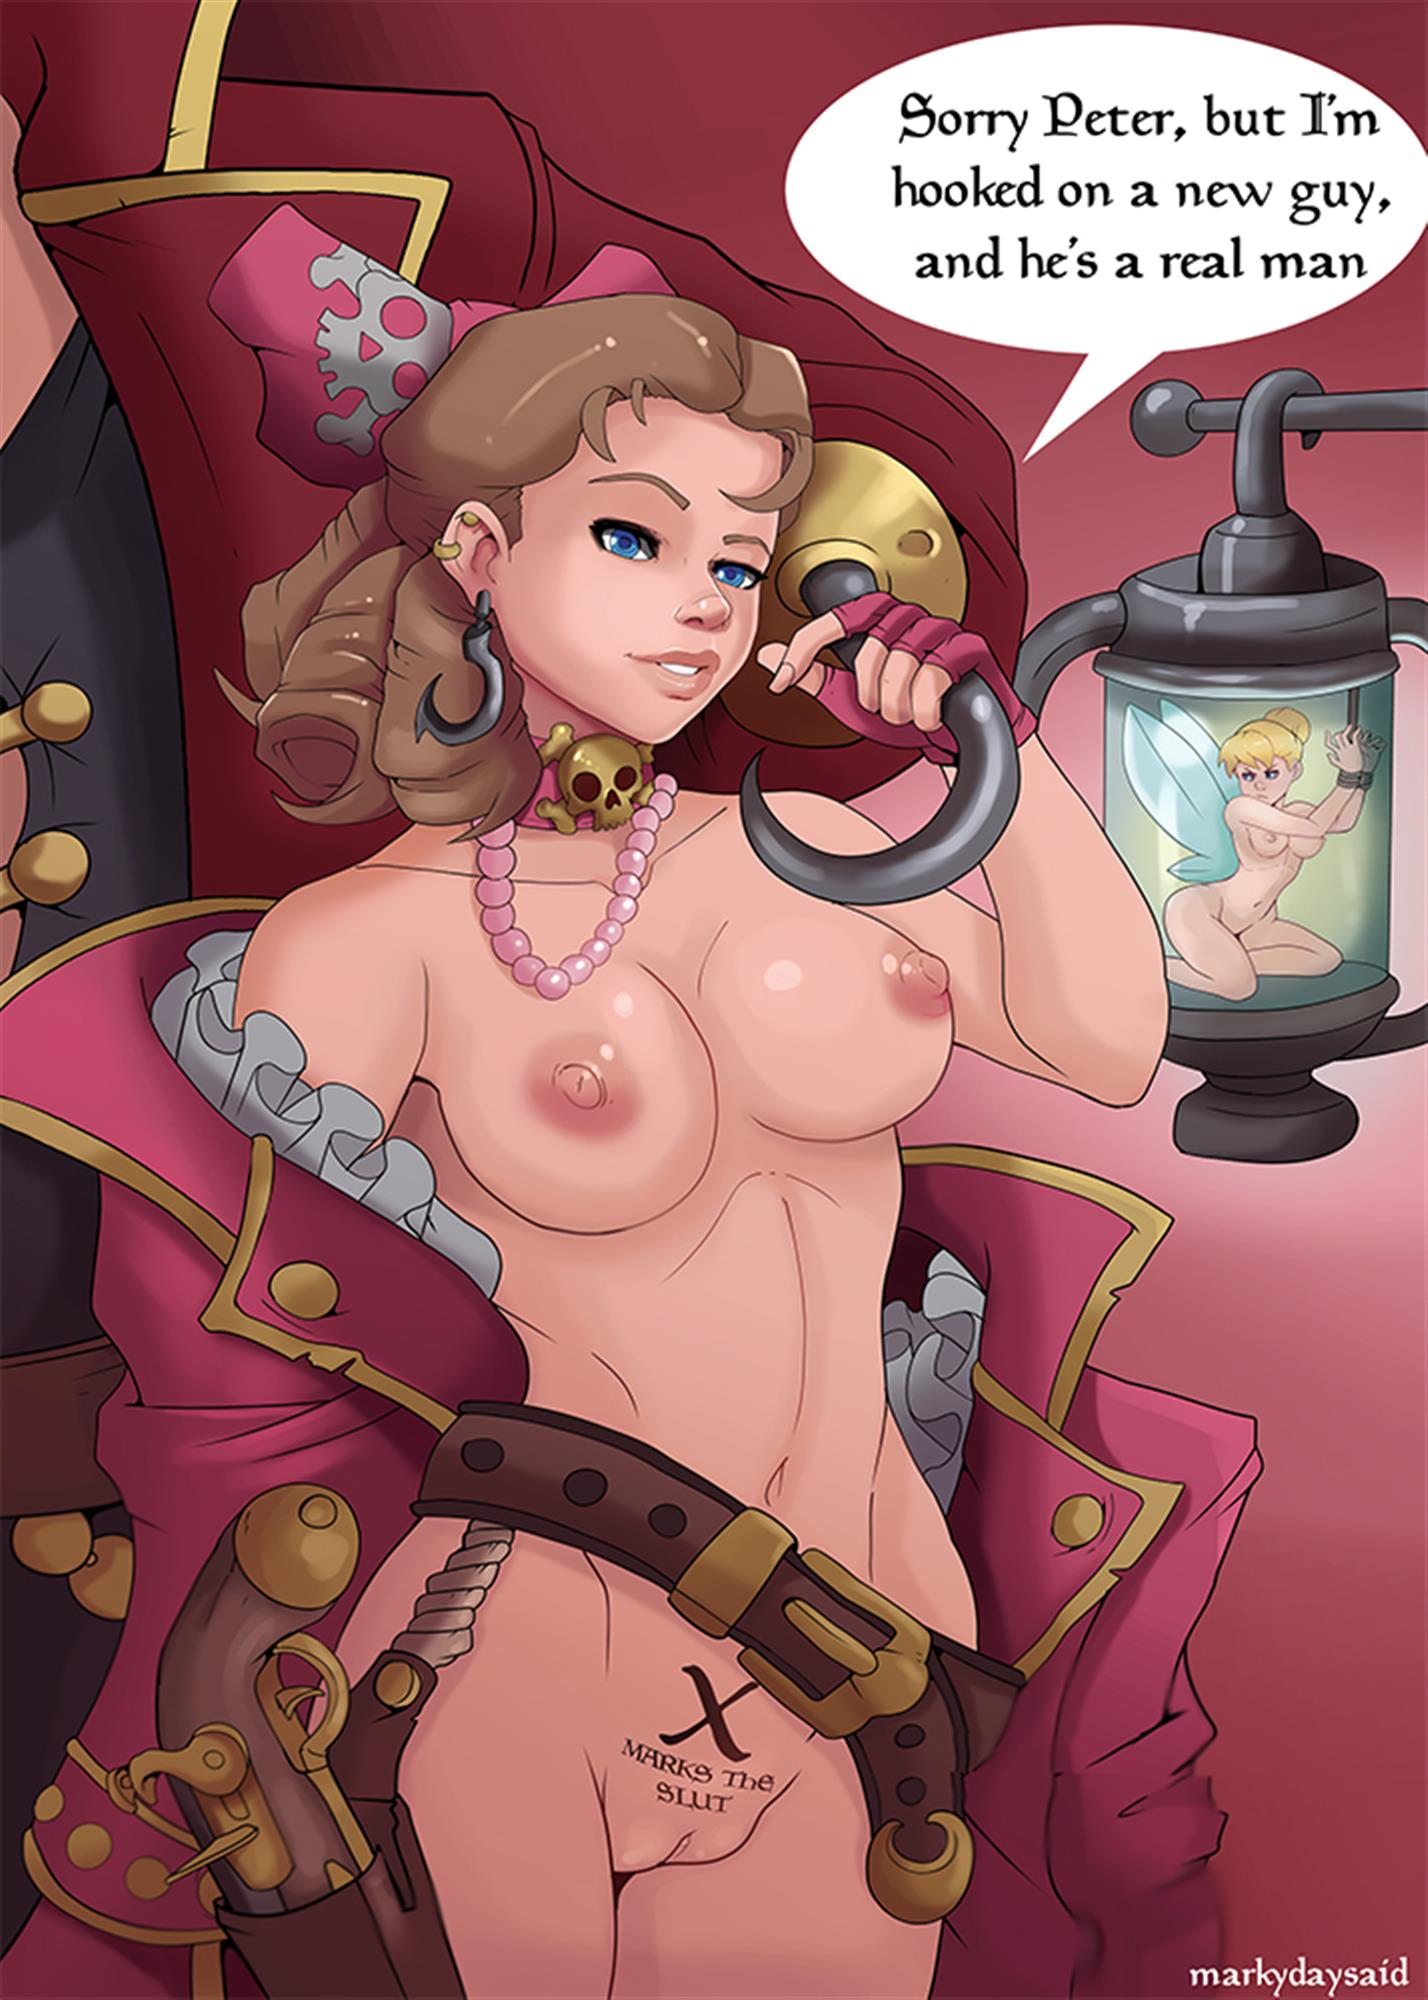 Sexy hot disney hentai bell fucking sexy. Did